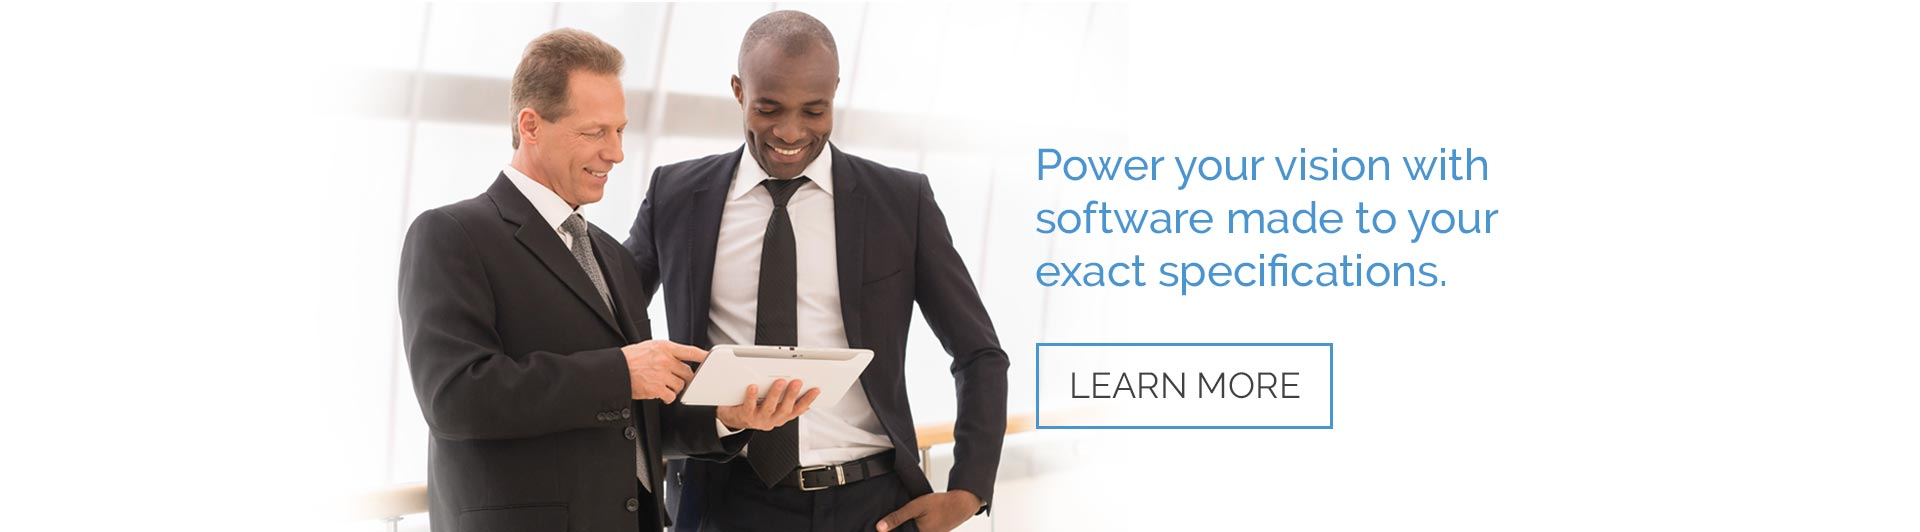 Power your vision with software made to your exact requirements.